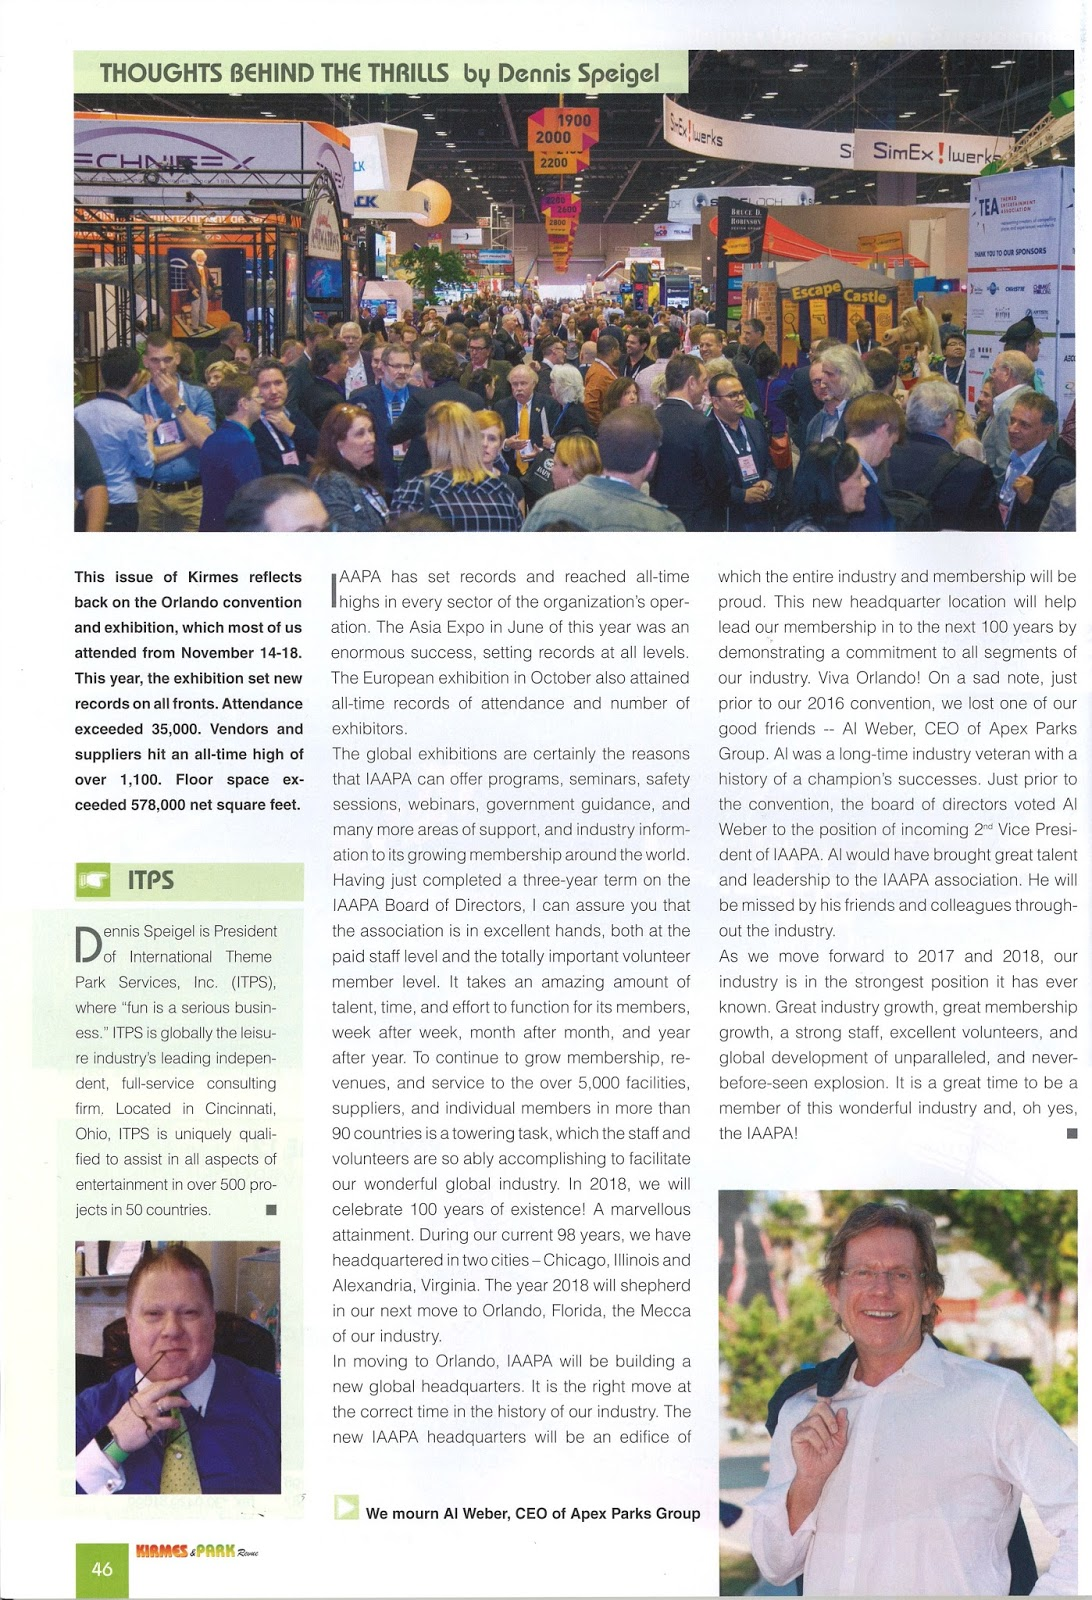 Kirmes - Thoughts Behind the Thrills - IAAPA Review | Articles by